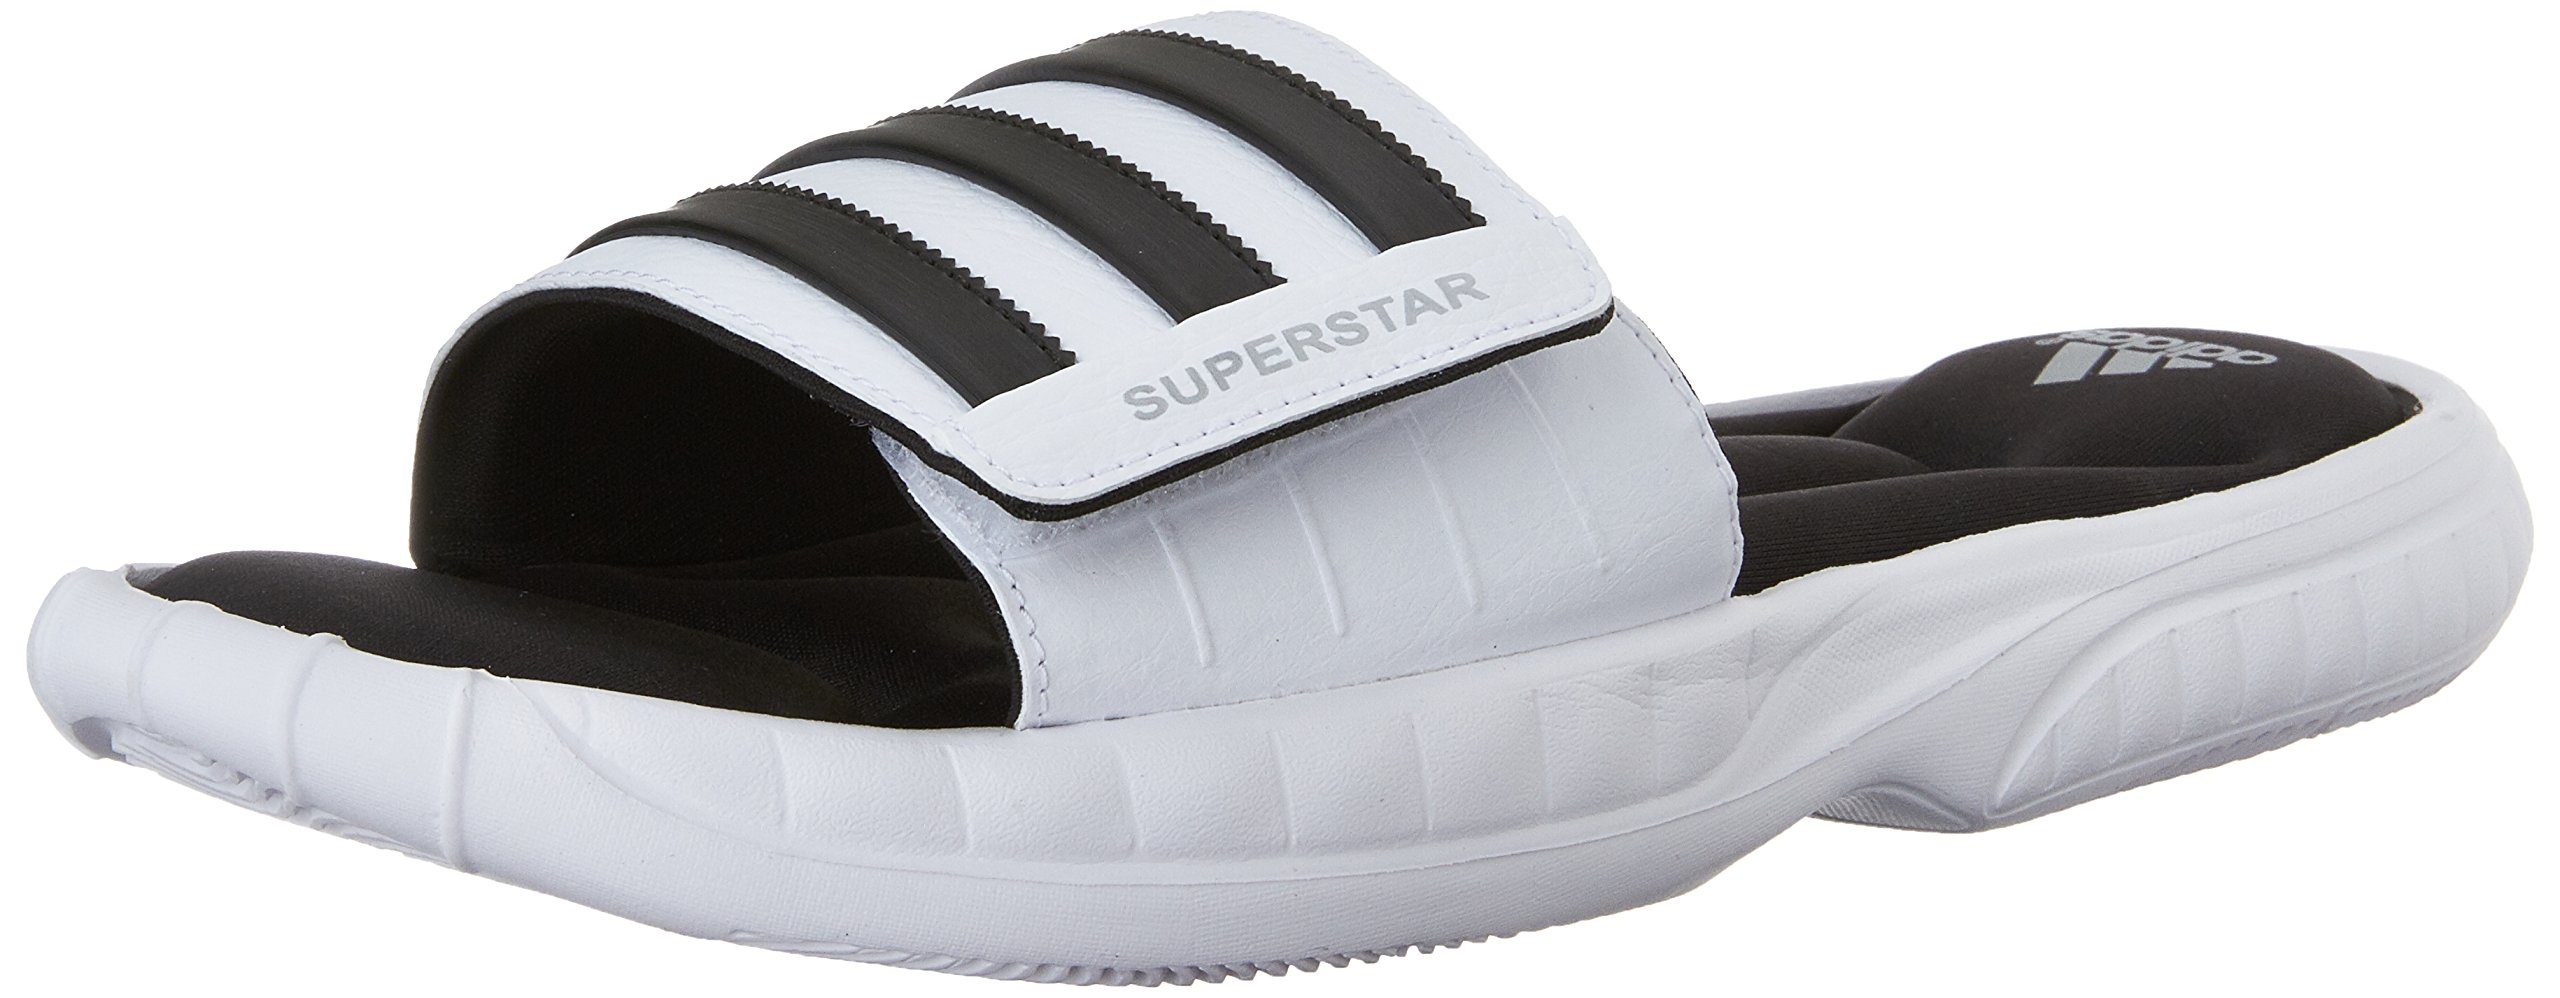 2409641793cc Get Quotations · adidas Performance Men s Superstar 3G Slide Sandal